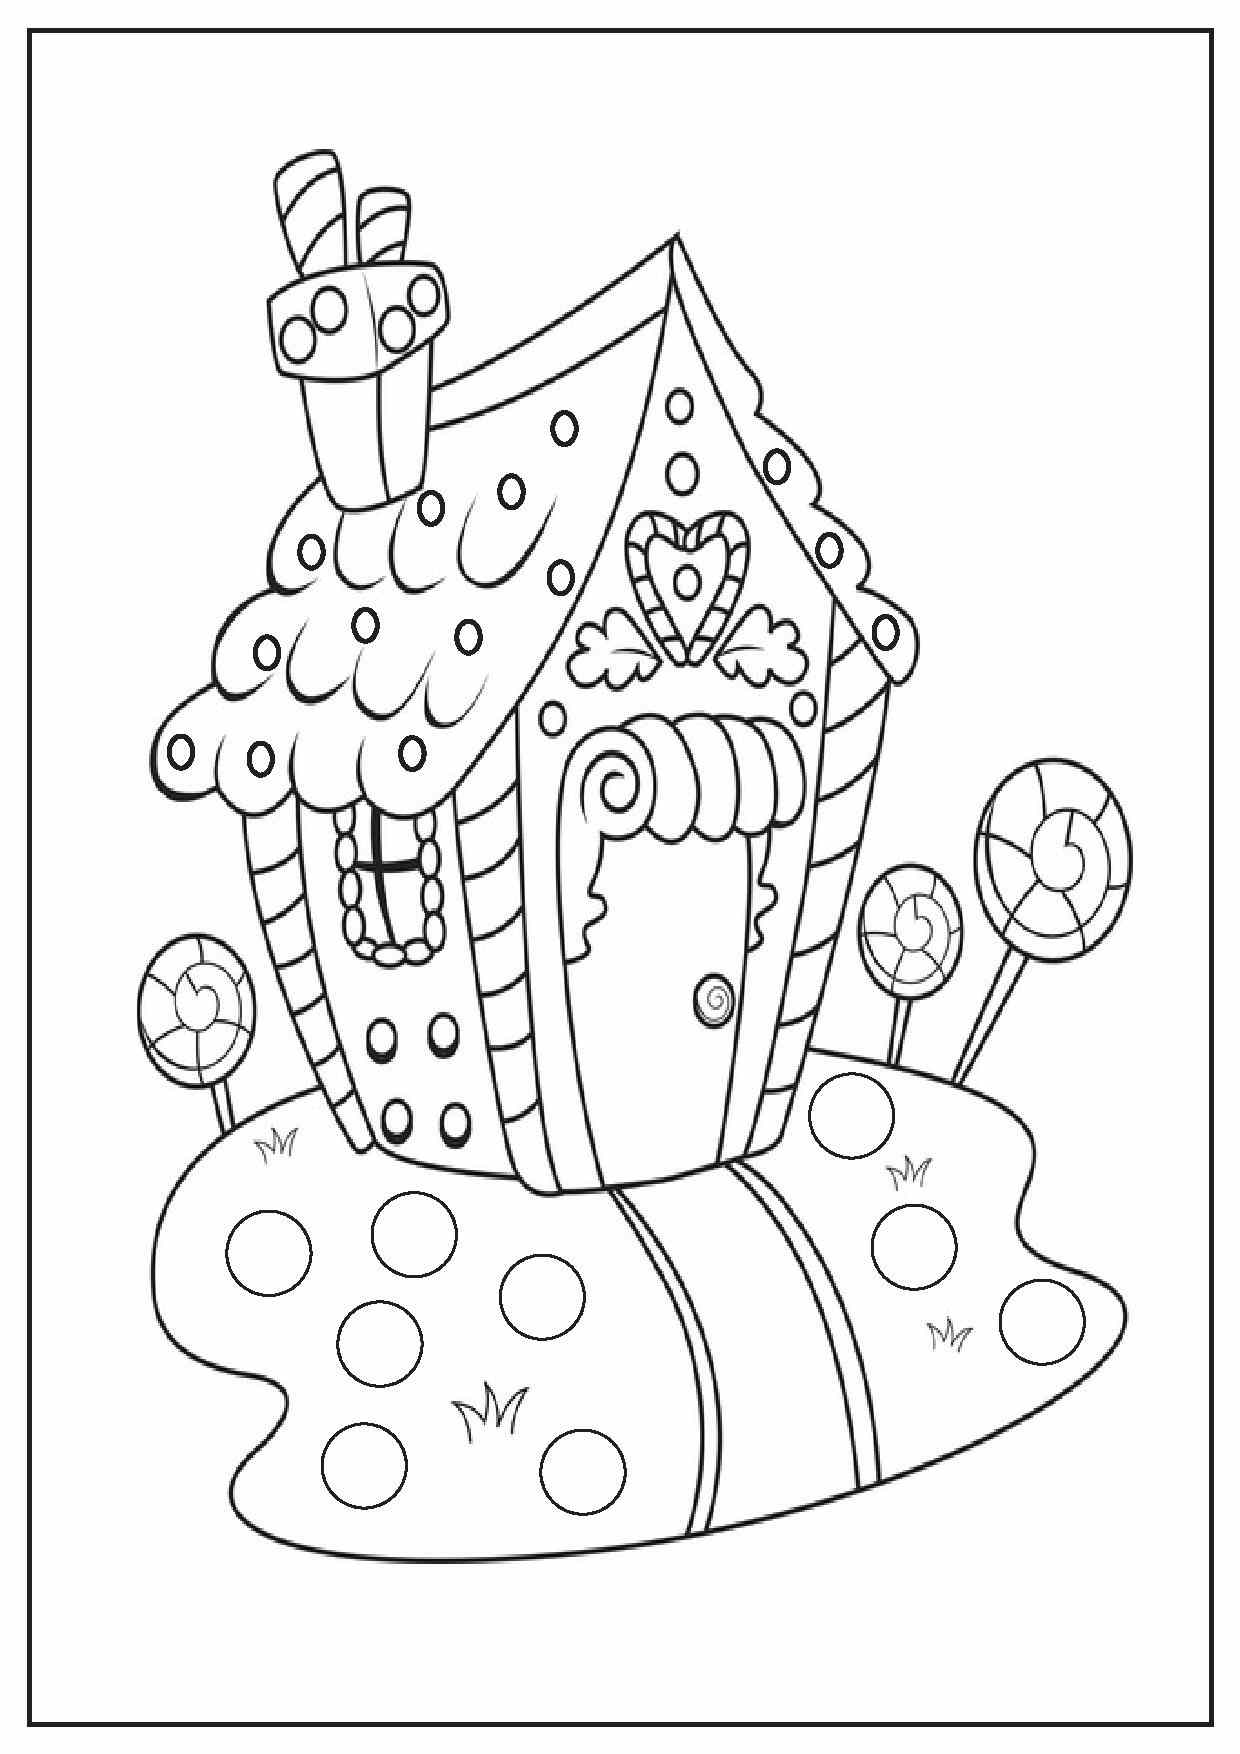 holiday coloring pages free full page christmas coloring pages at getcoloringscom free holiday pages coloring